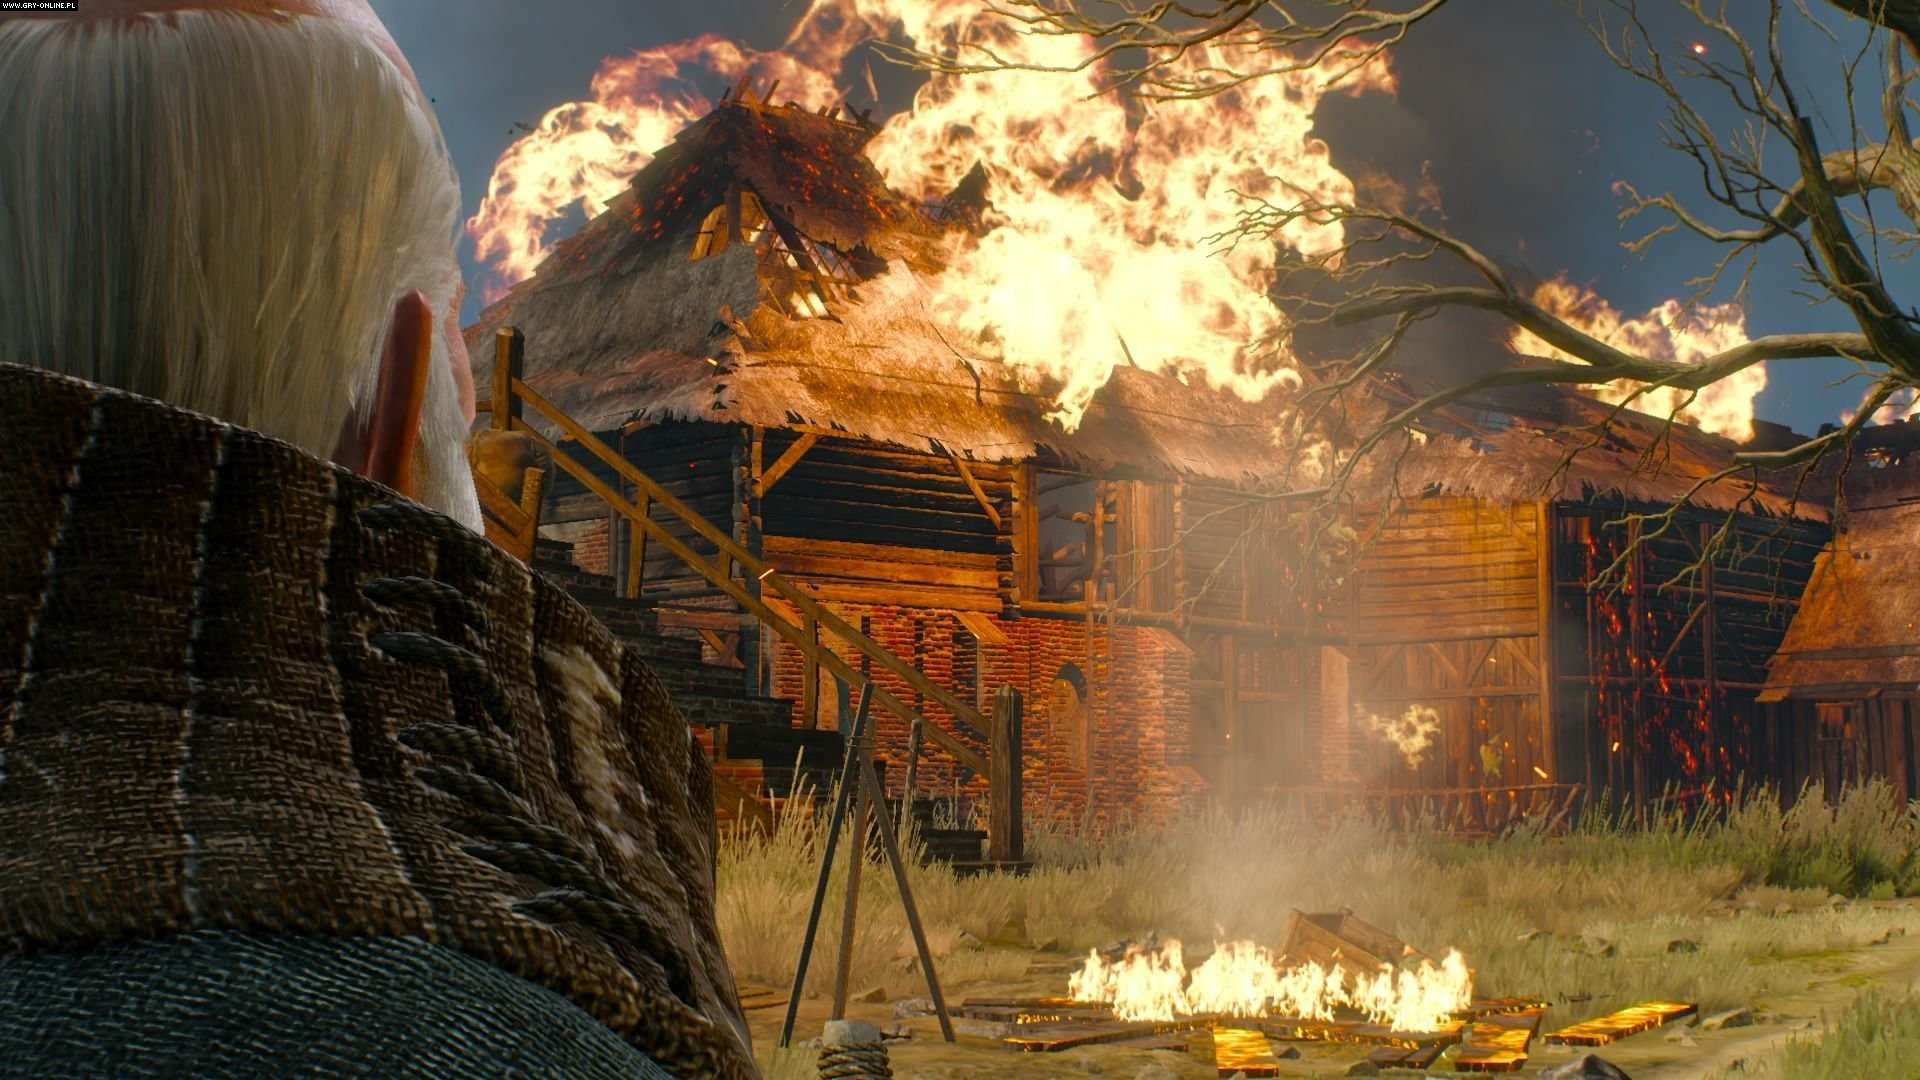 The Witcher 3: Wild Hunt PS4 Games Image 5/185, CD Projekt RED, Bandai Namco Entertainment